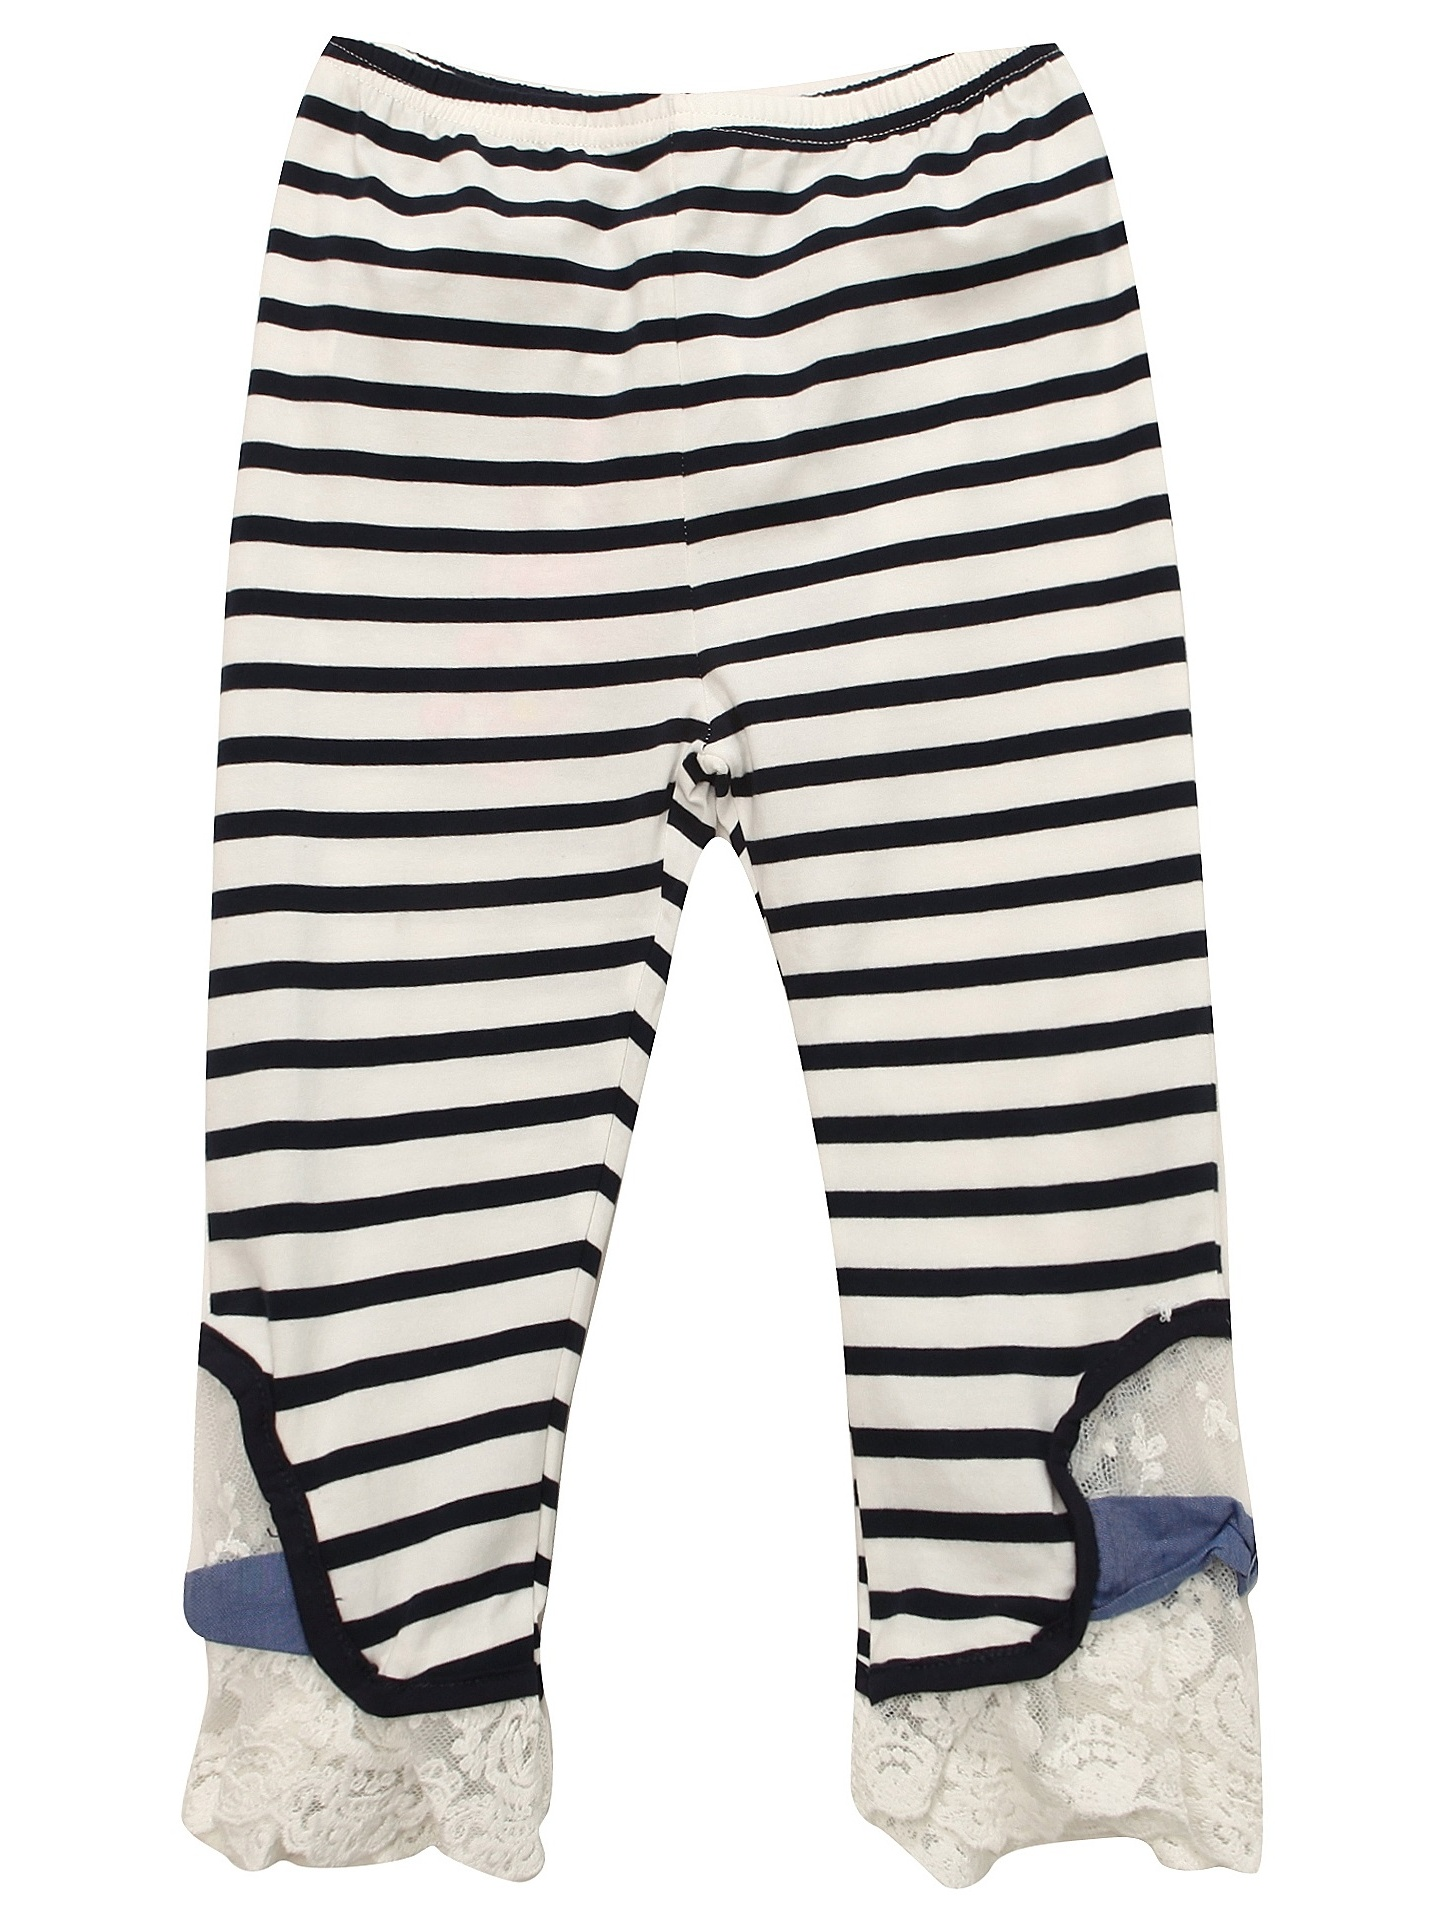 Richie House Girls' Knit Striped Pants with Lace Bottom RH1644